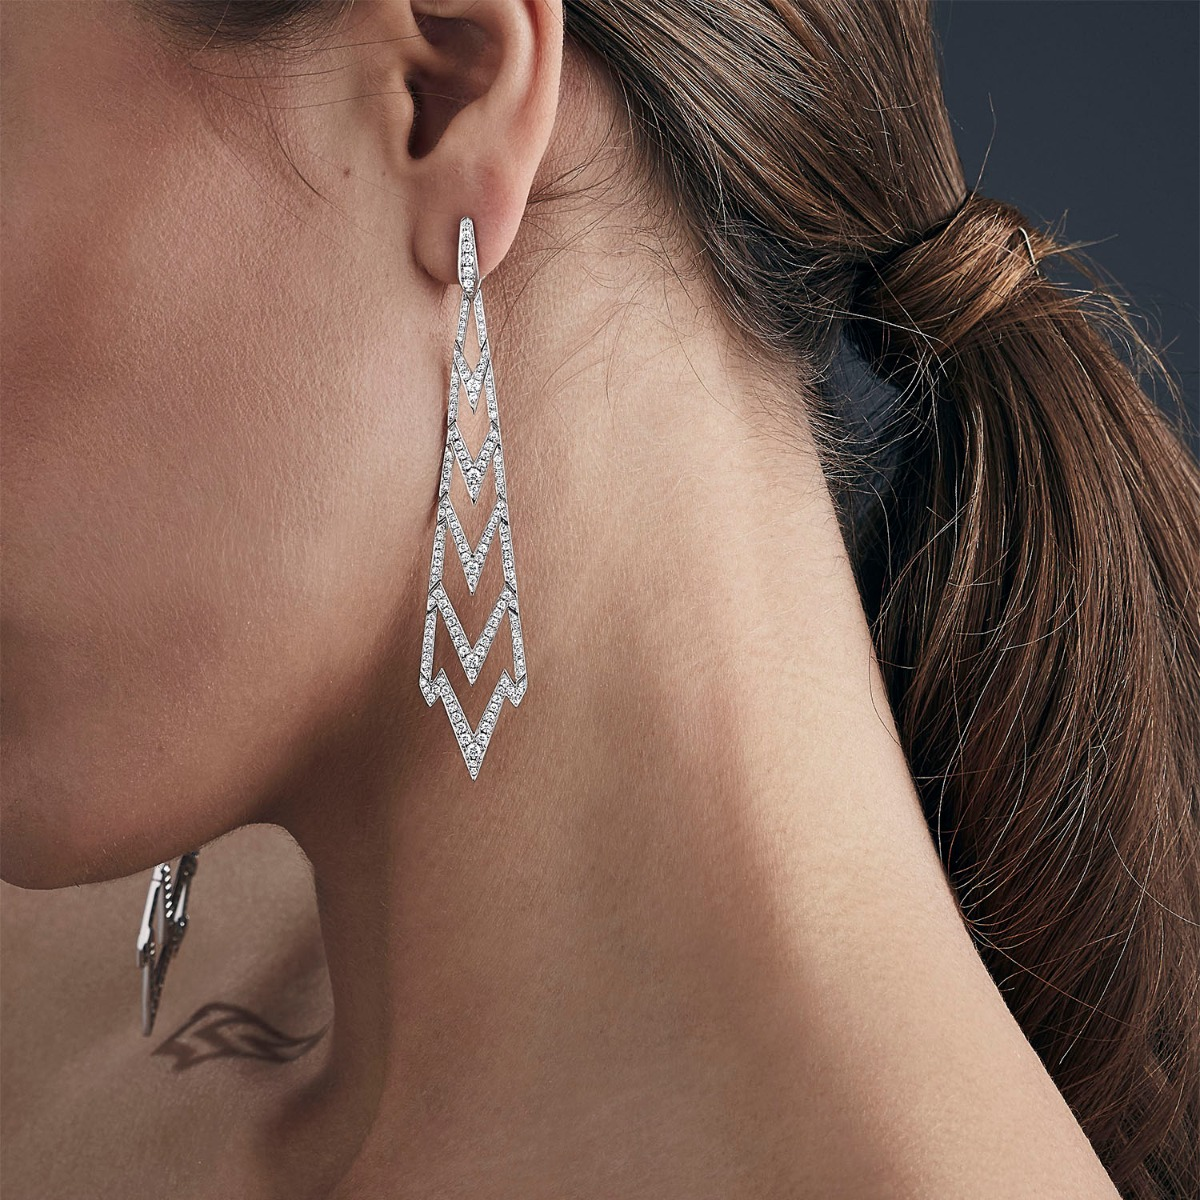 Long Earrings With White Diamonds Set in White Gold | Lady Stardust